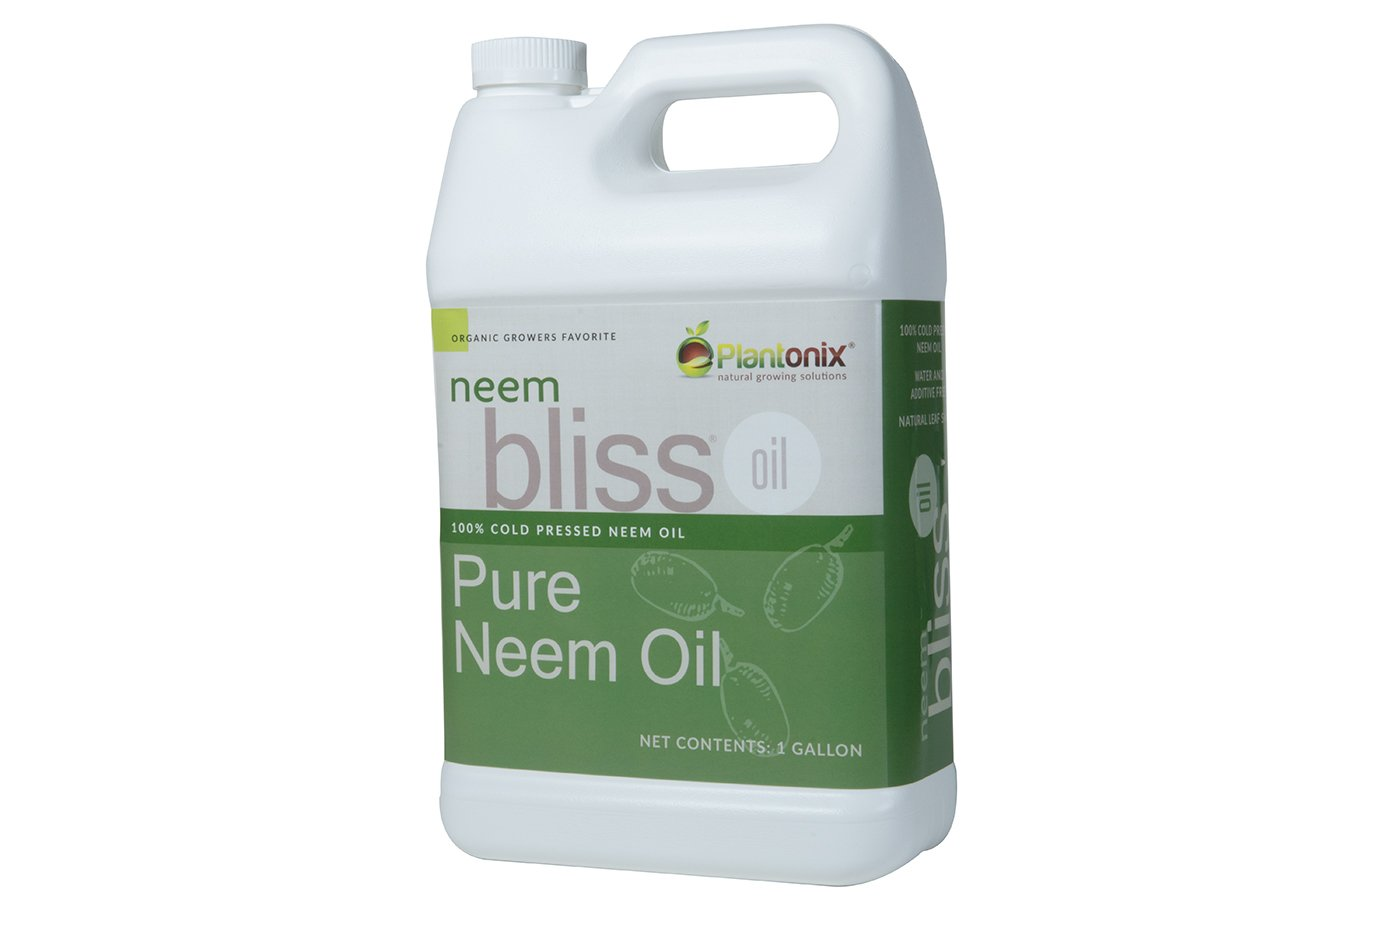 Organic Neem Bliss 100% Pure Cold Pressed Neem Seed Oil (1 Gallon) OMRI Listed for Organic Use by Neem Bliss